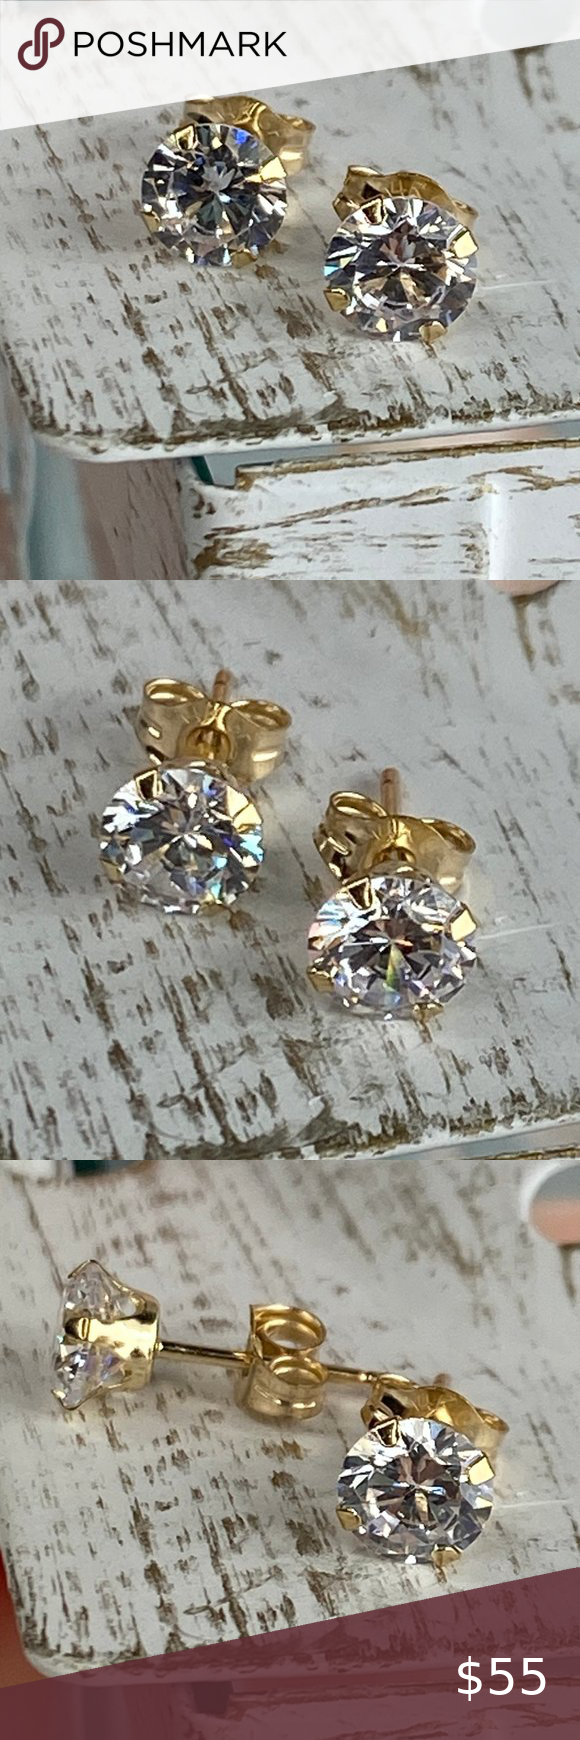 Solid 10k Gold Cubic Zirconia Stud Earrings In 2020 Stud Earrings Cocktail Jewelry Cz Stud Earrings